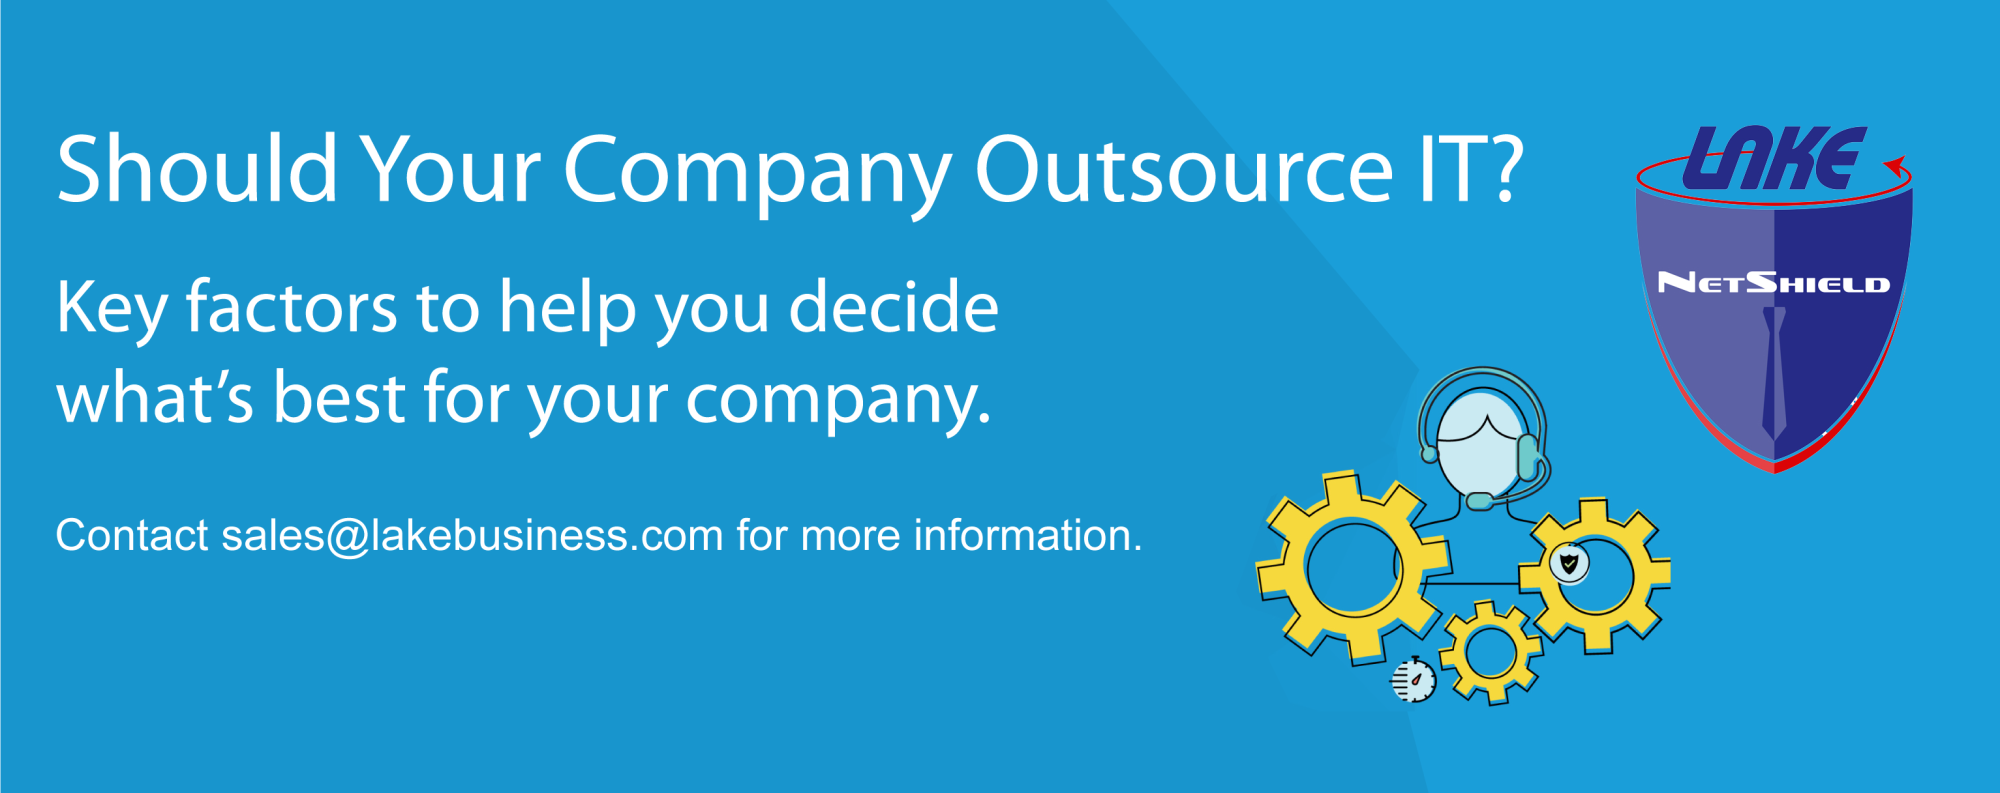 2018-11-08-Sould-your-company-outsource-IT.png